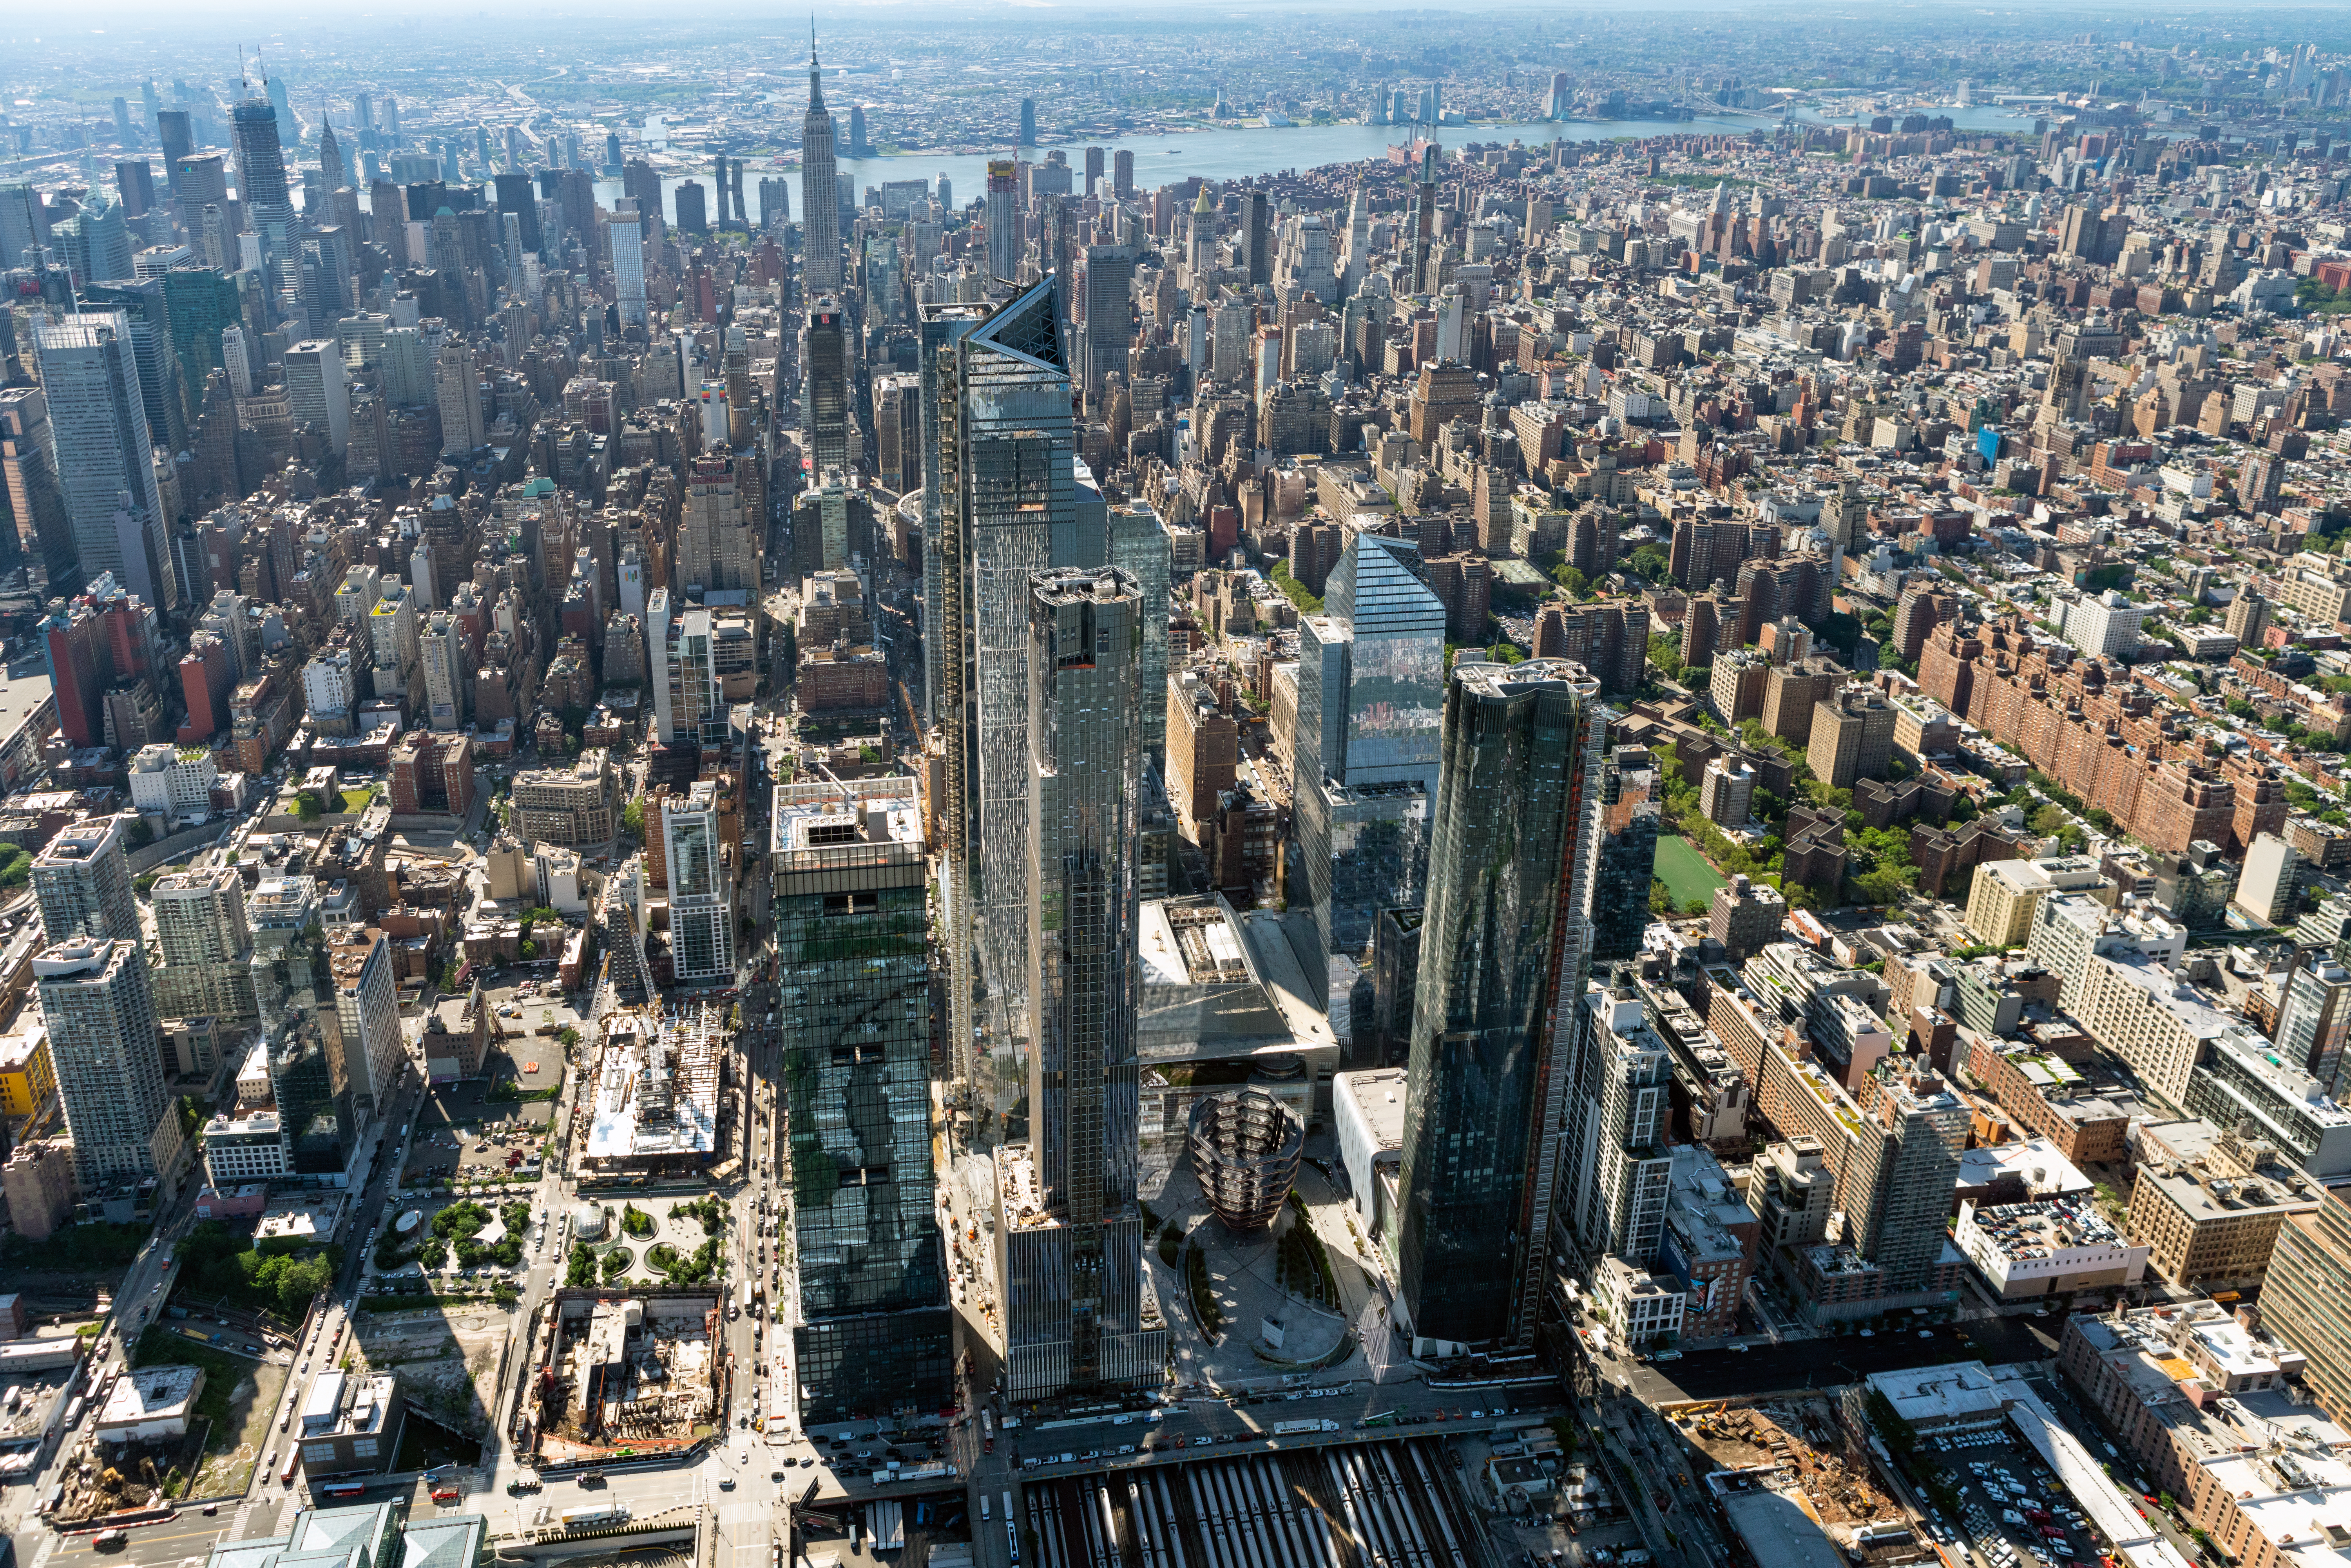 An aerial view of Manhattan, with Hudson Yards and the Empire State Building in sight, for an article that talks about NYC real estate and the Manhattan housing market.